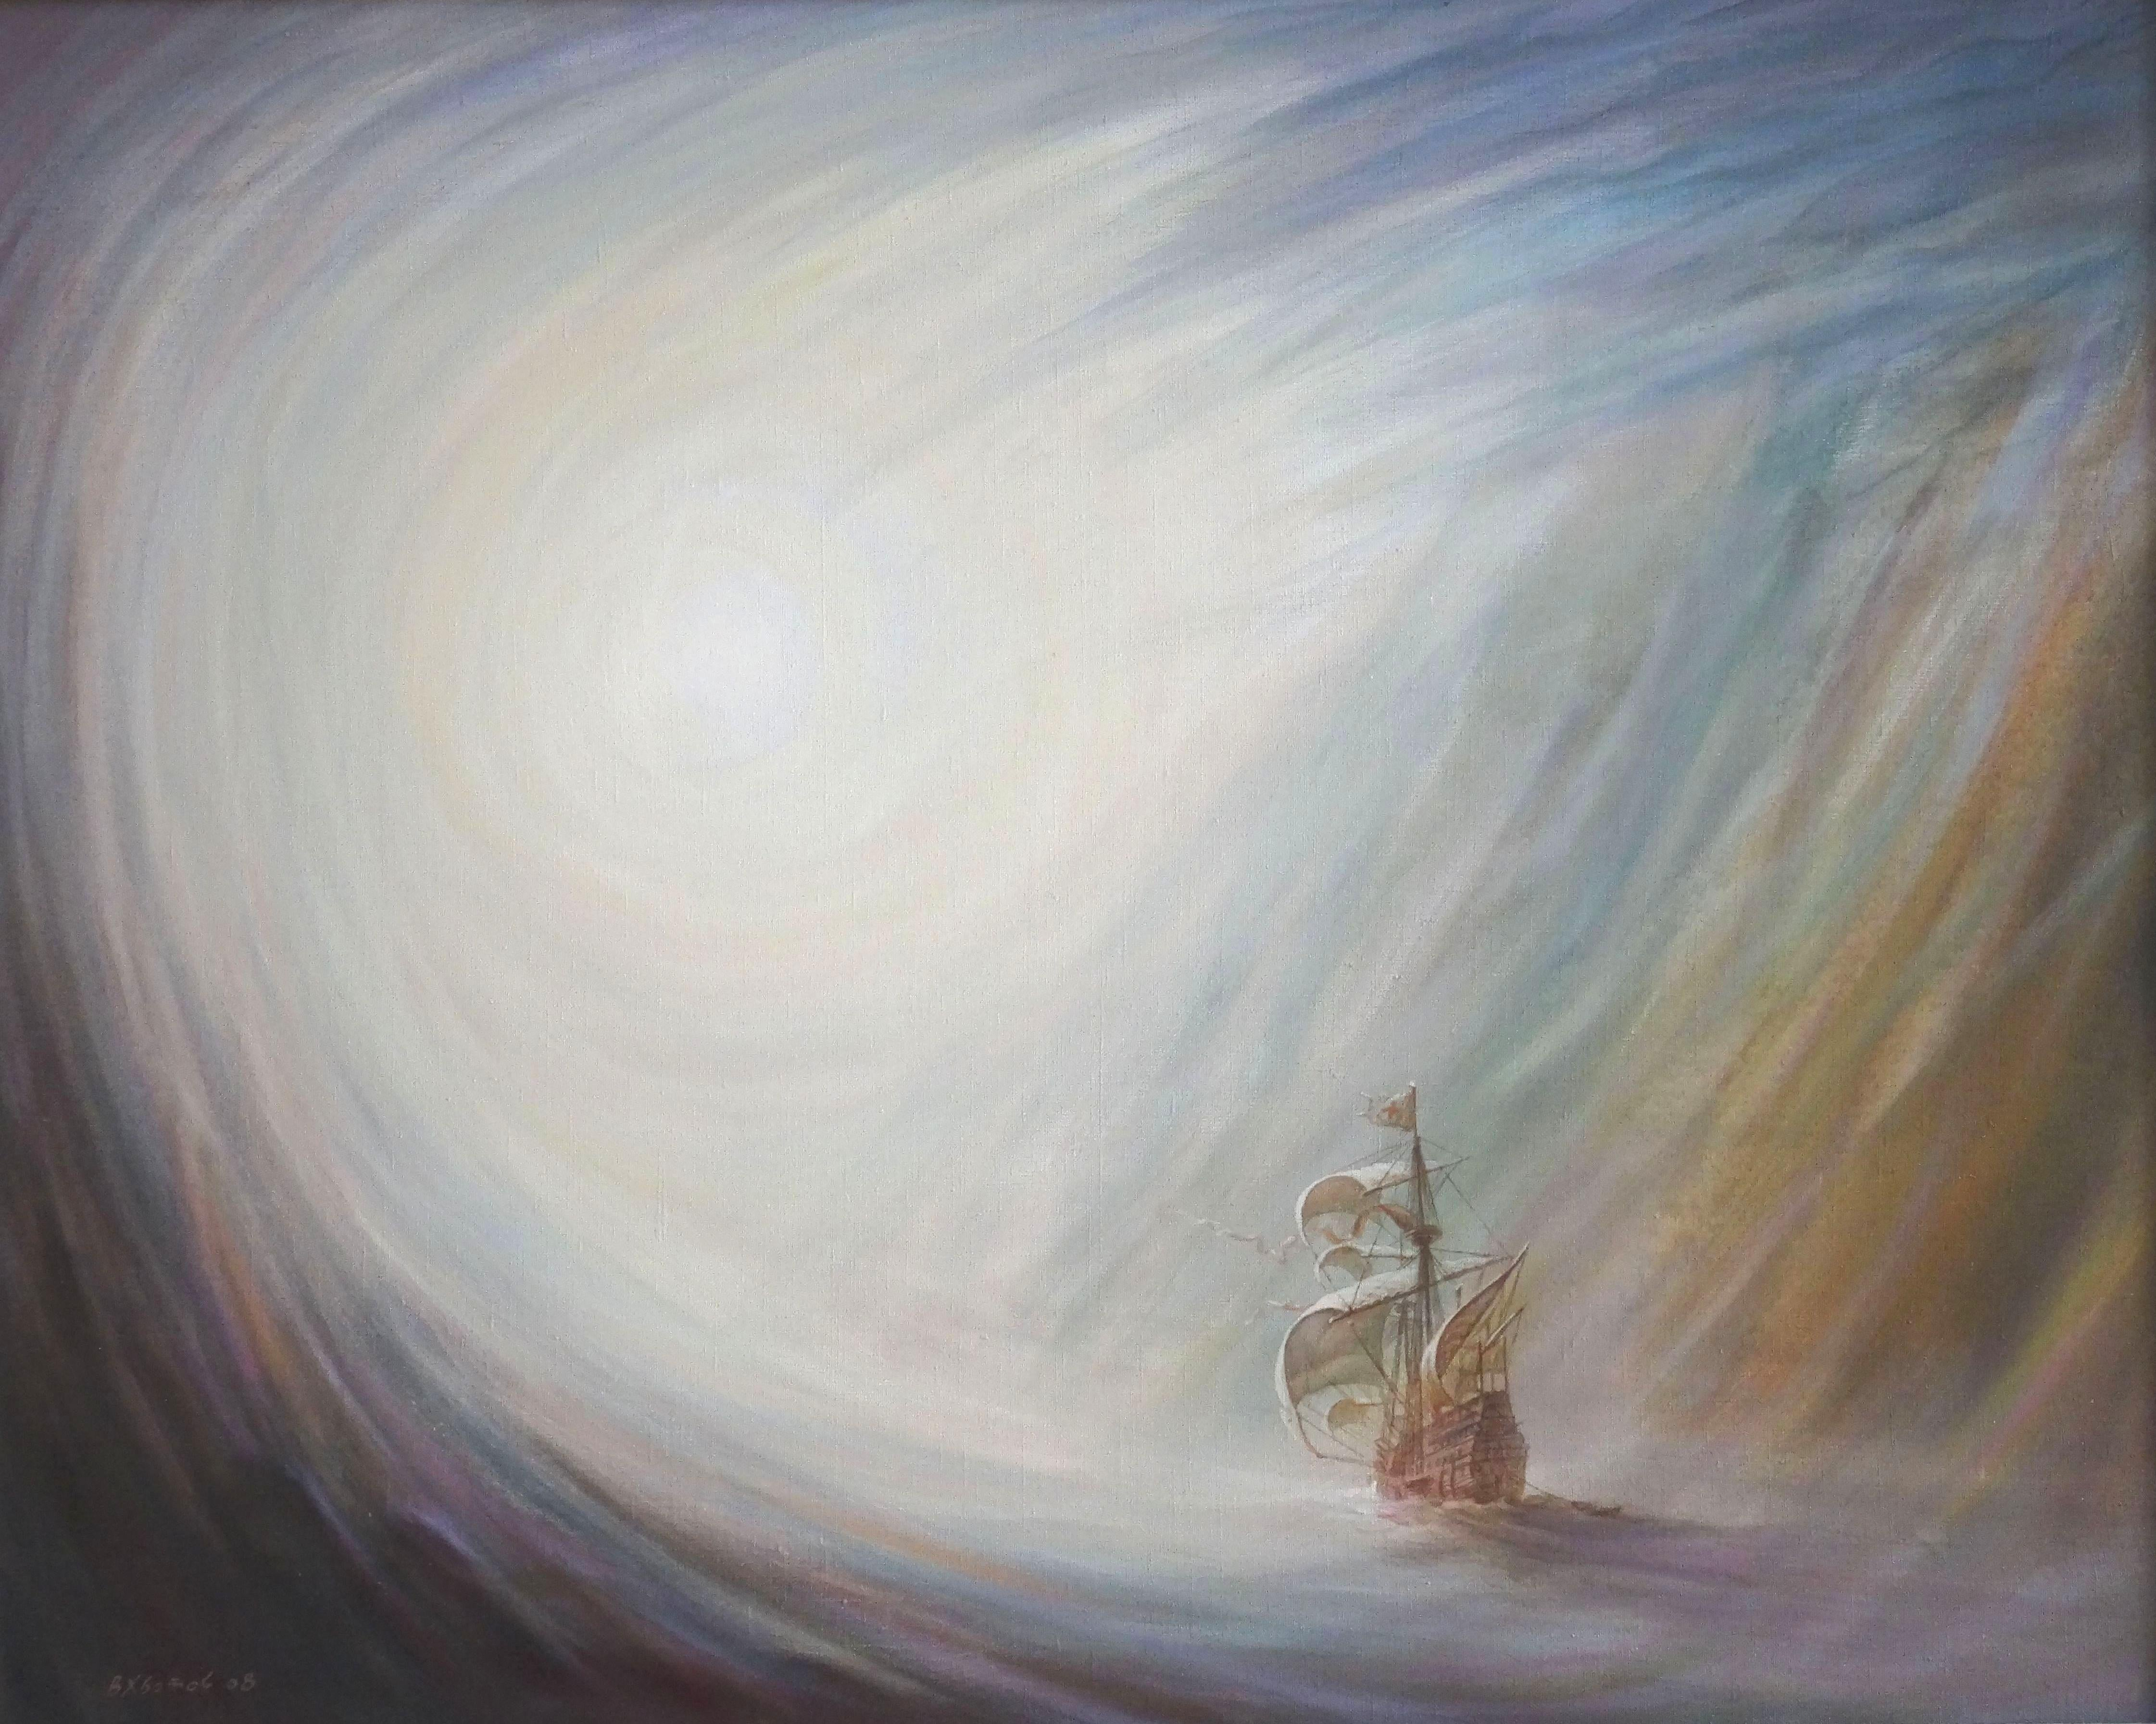 Fate. 2008, oil on canvas, 100x80 cm